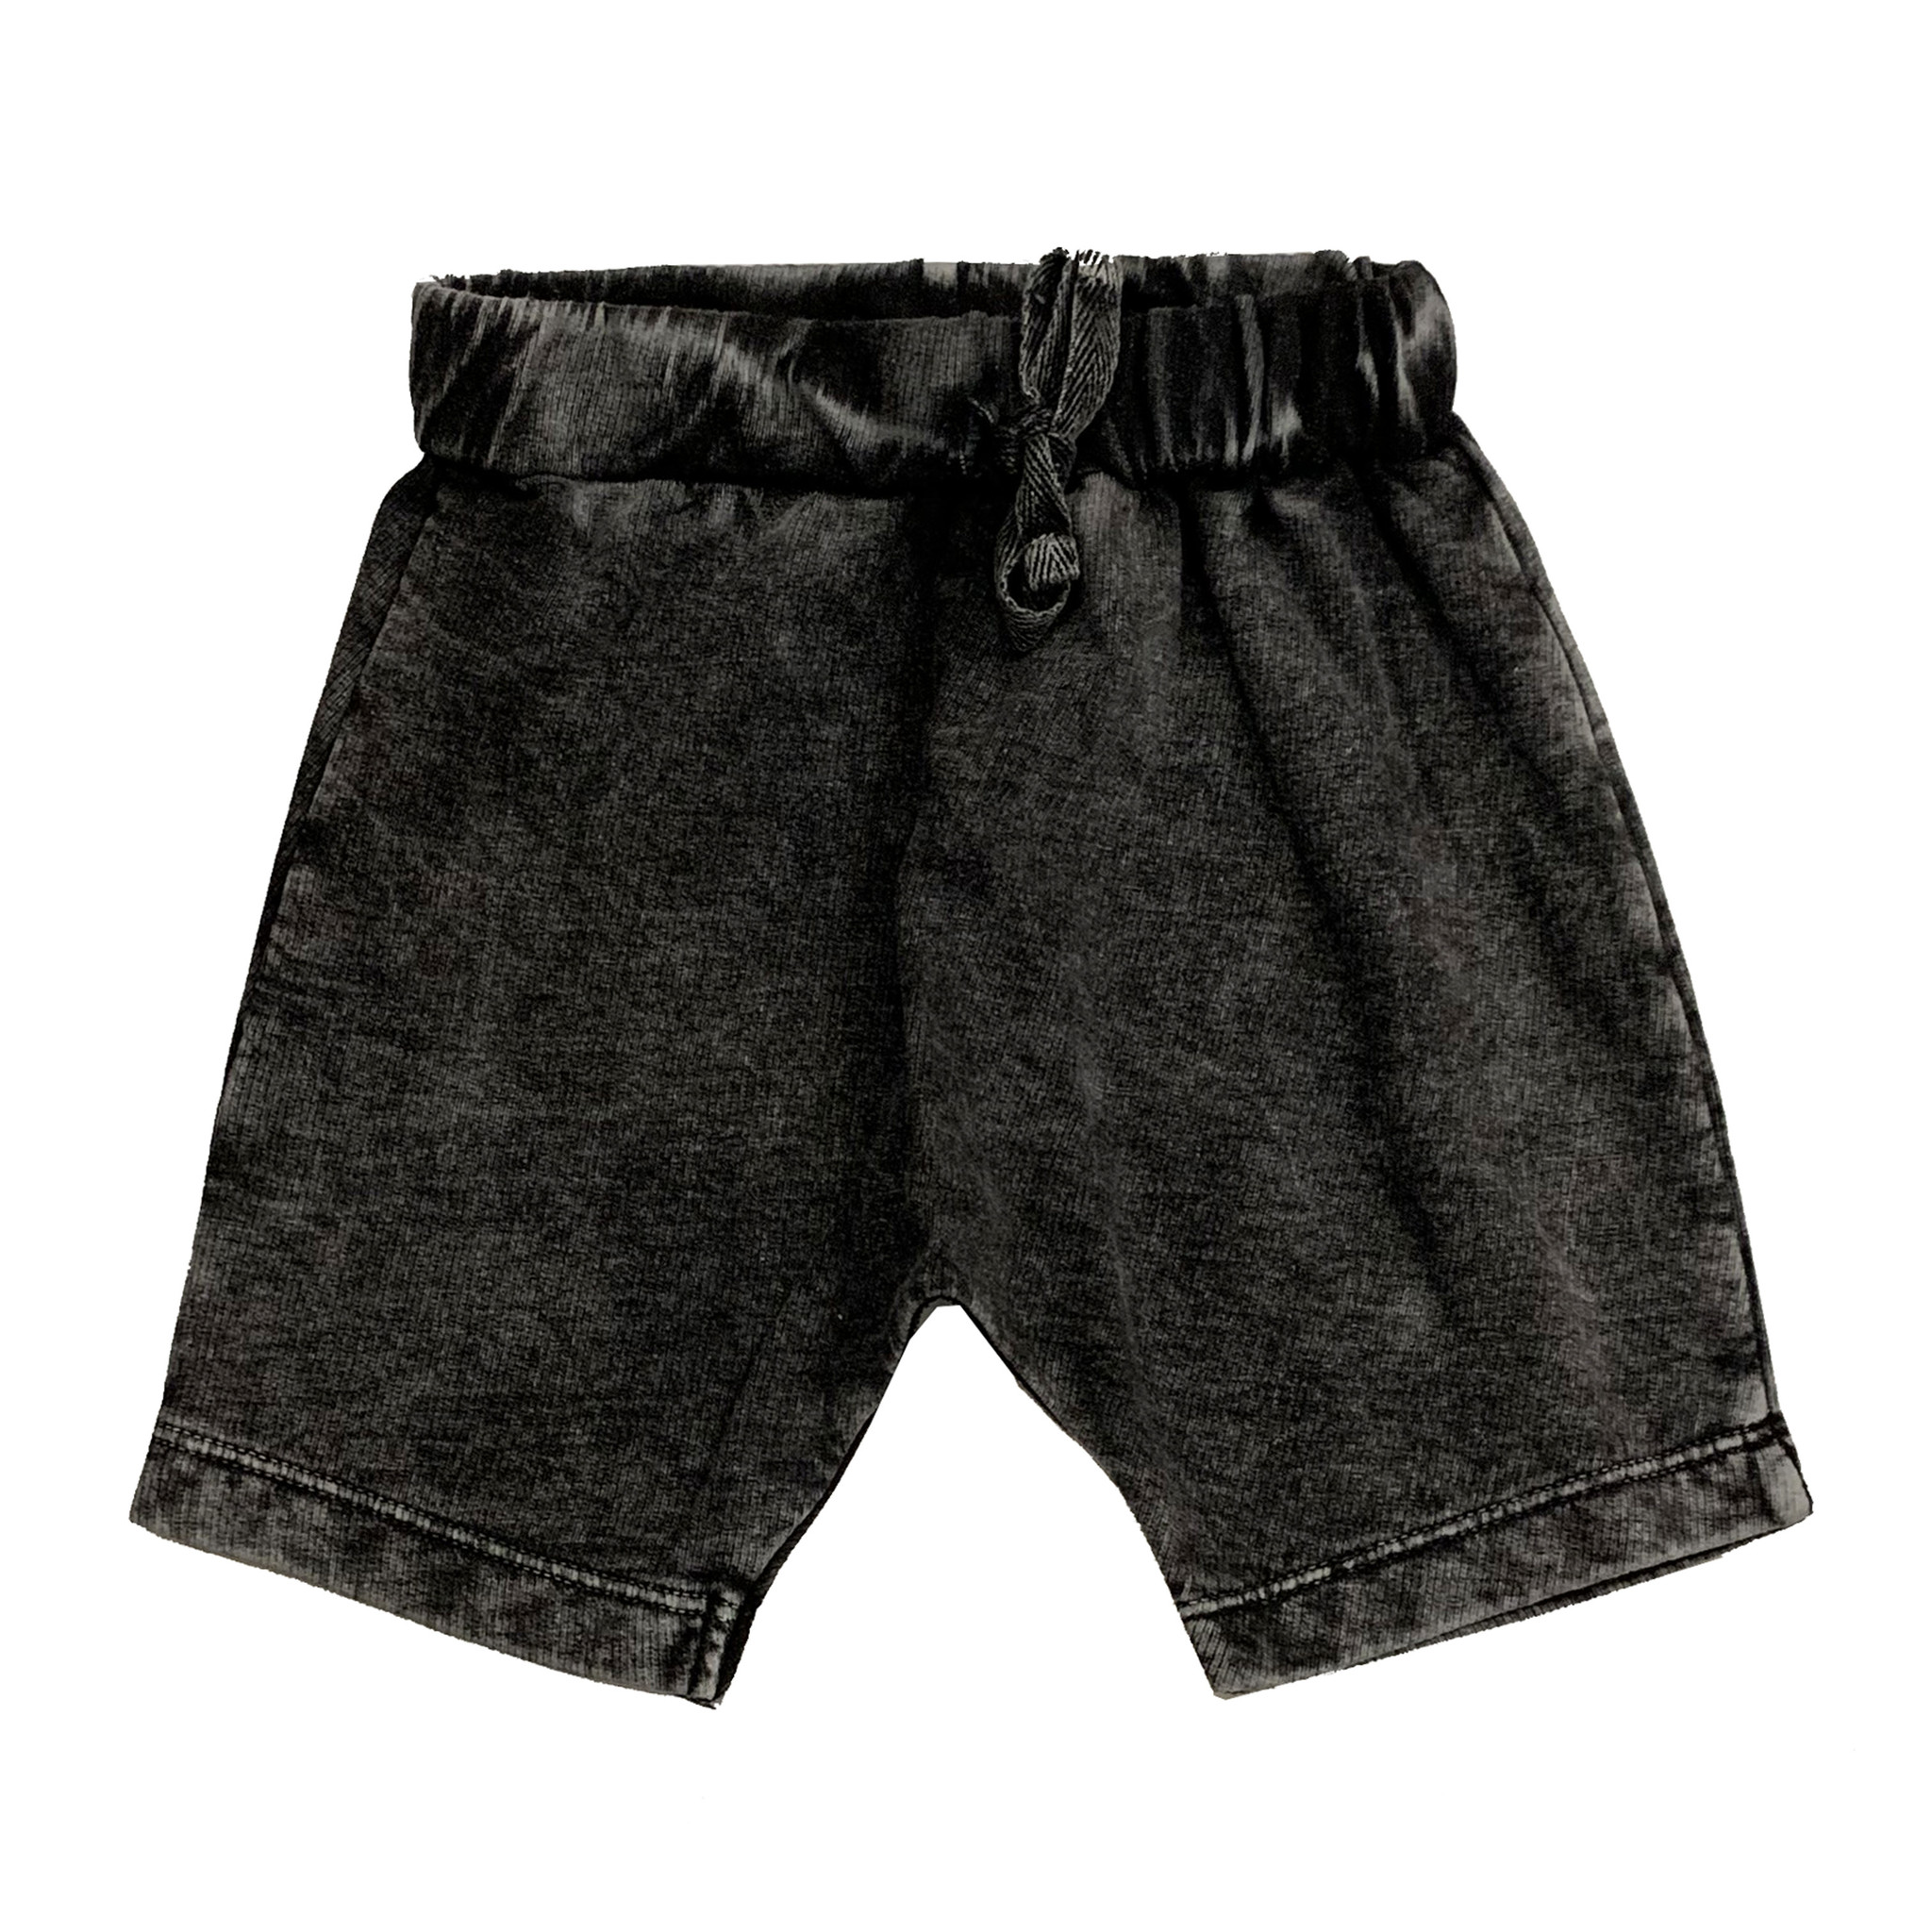 Mish Black Enzyme Harem Shorts